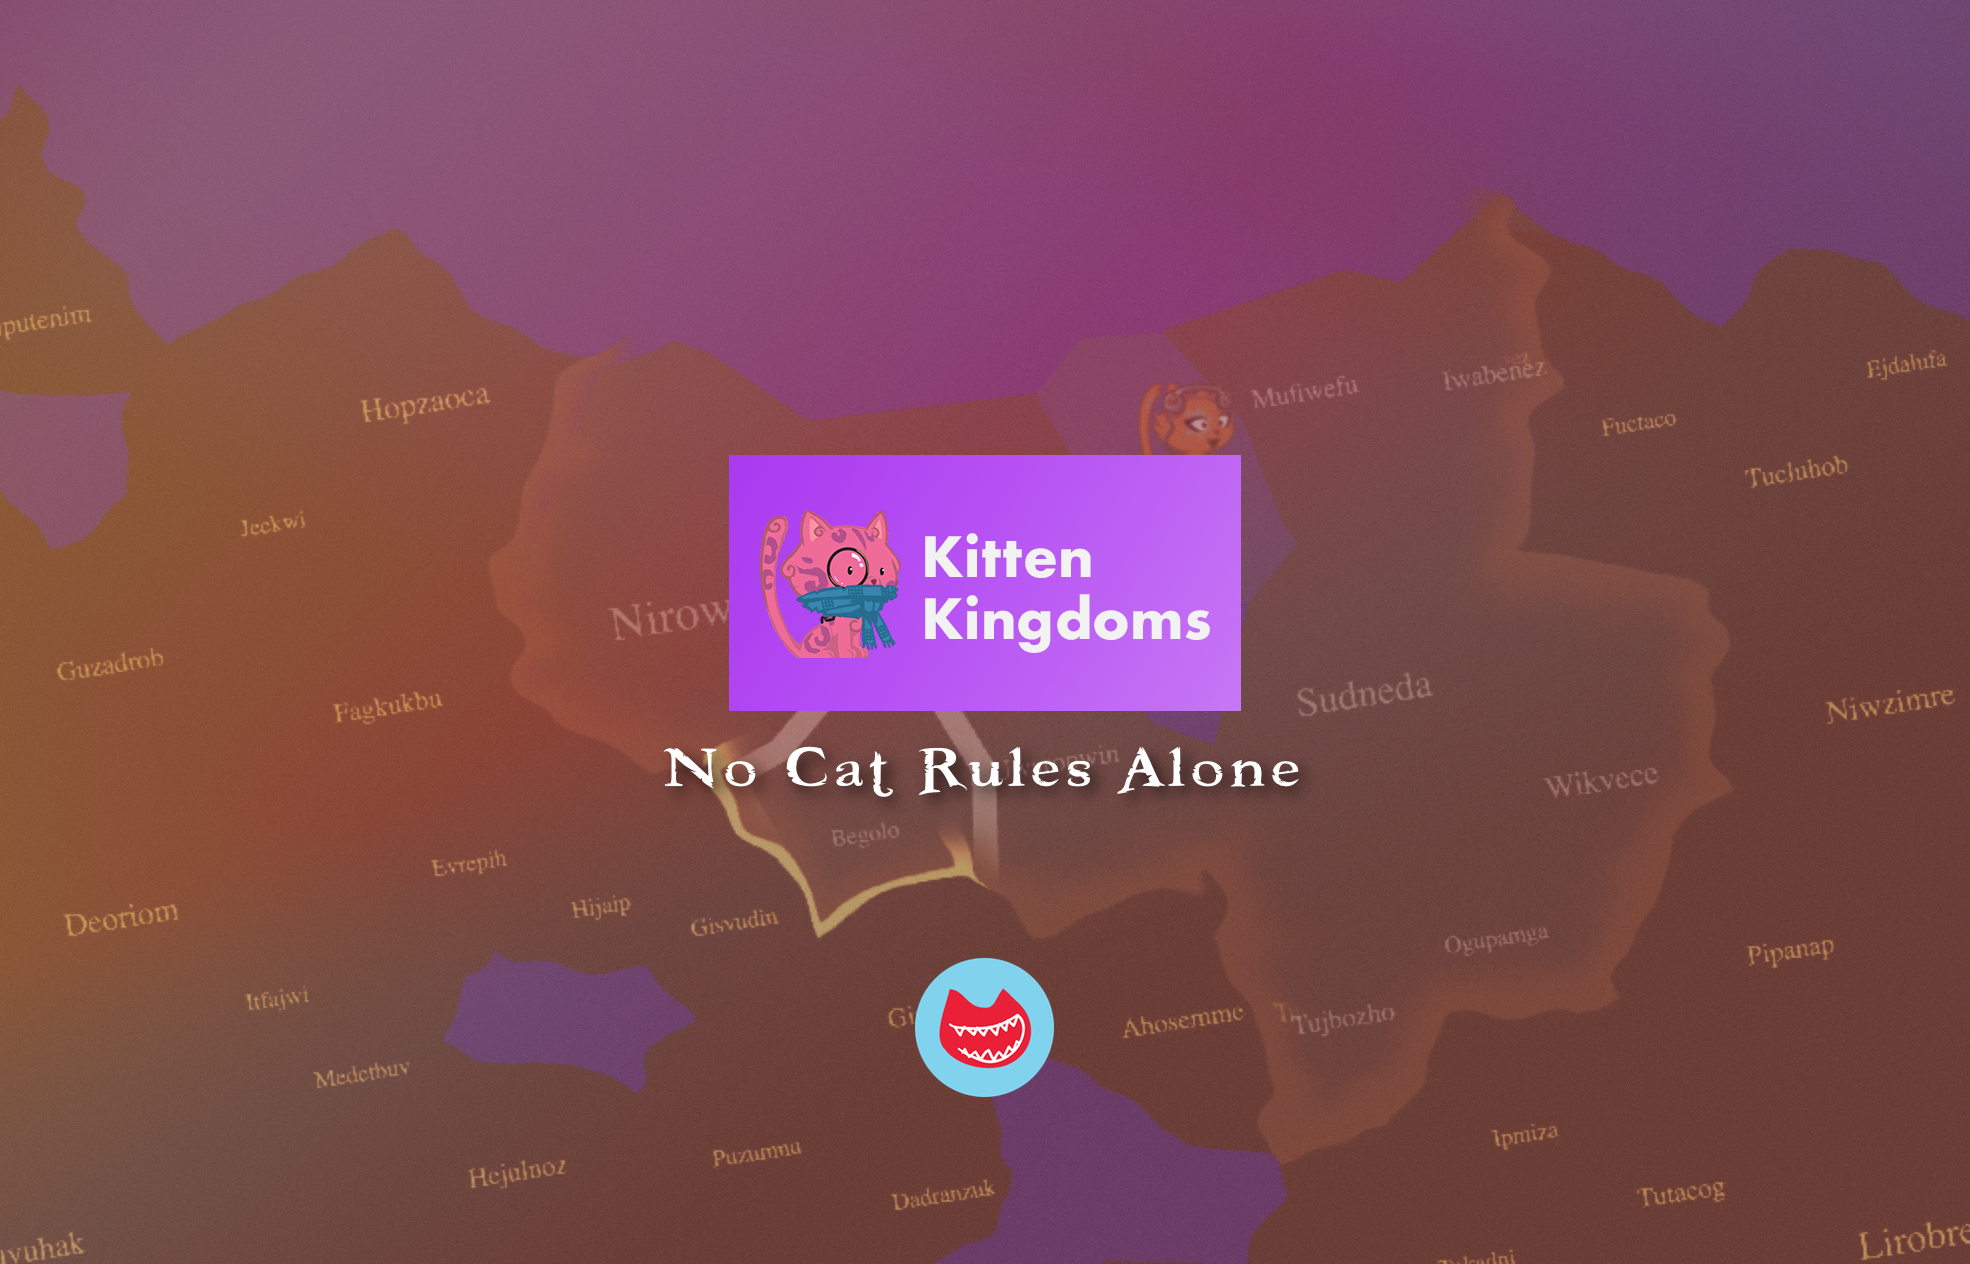 Kitten Kingdoms